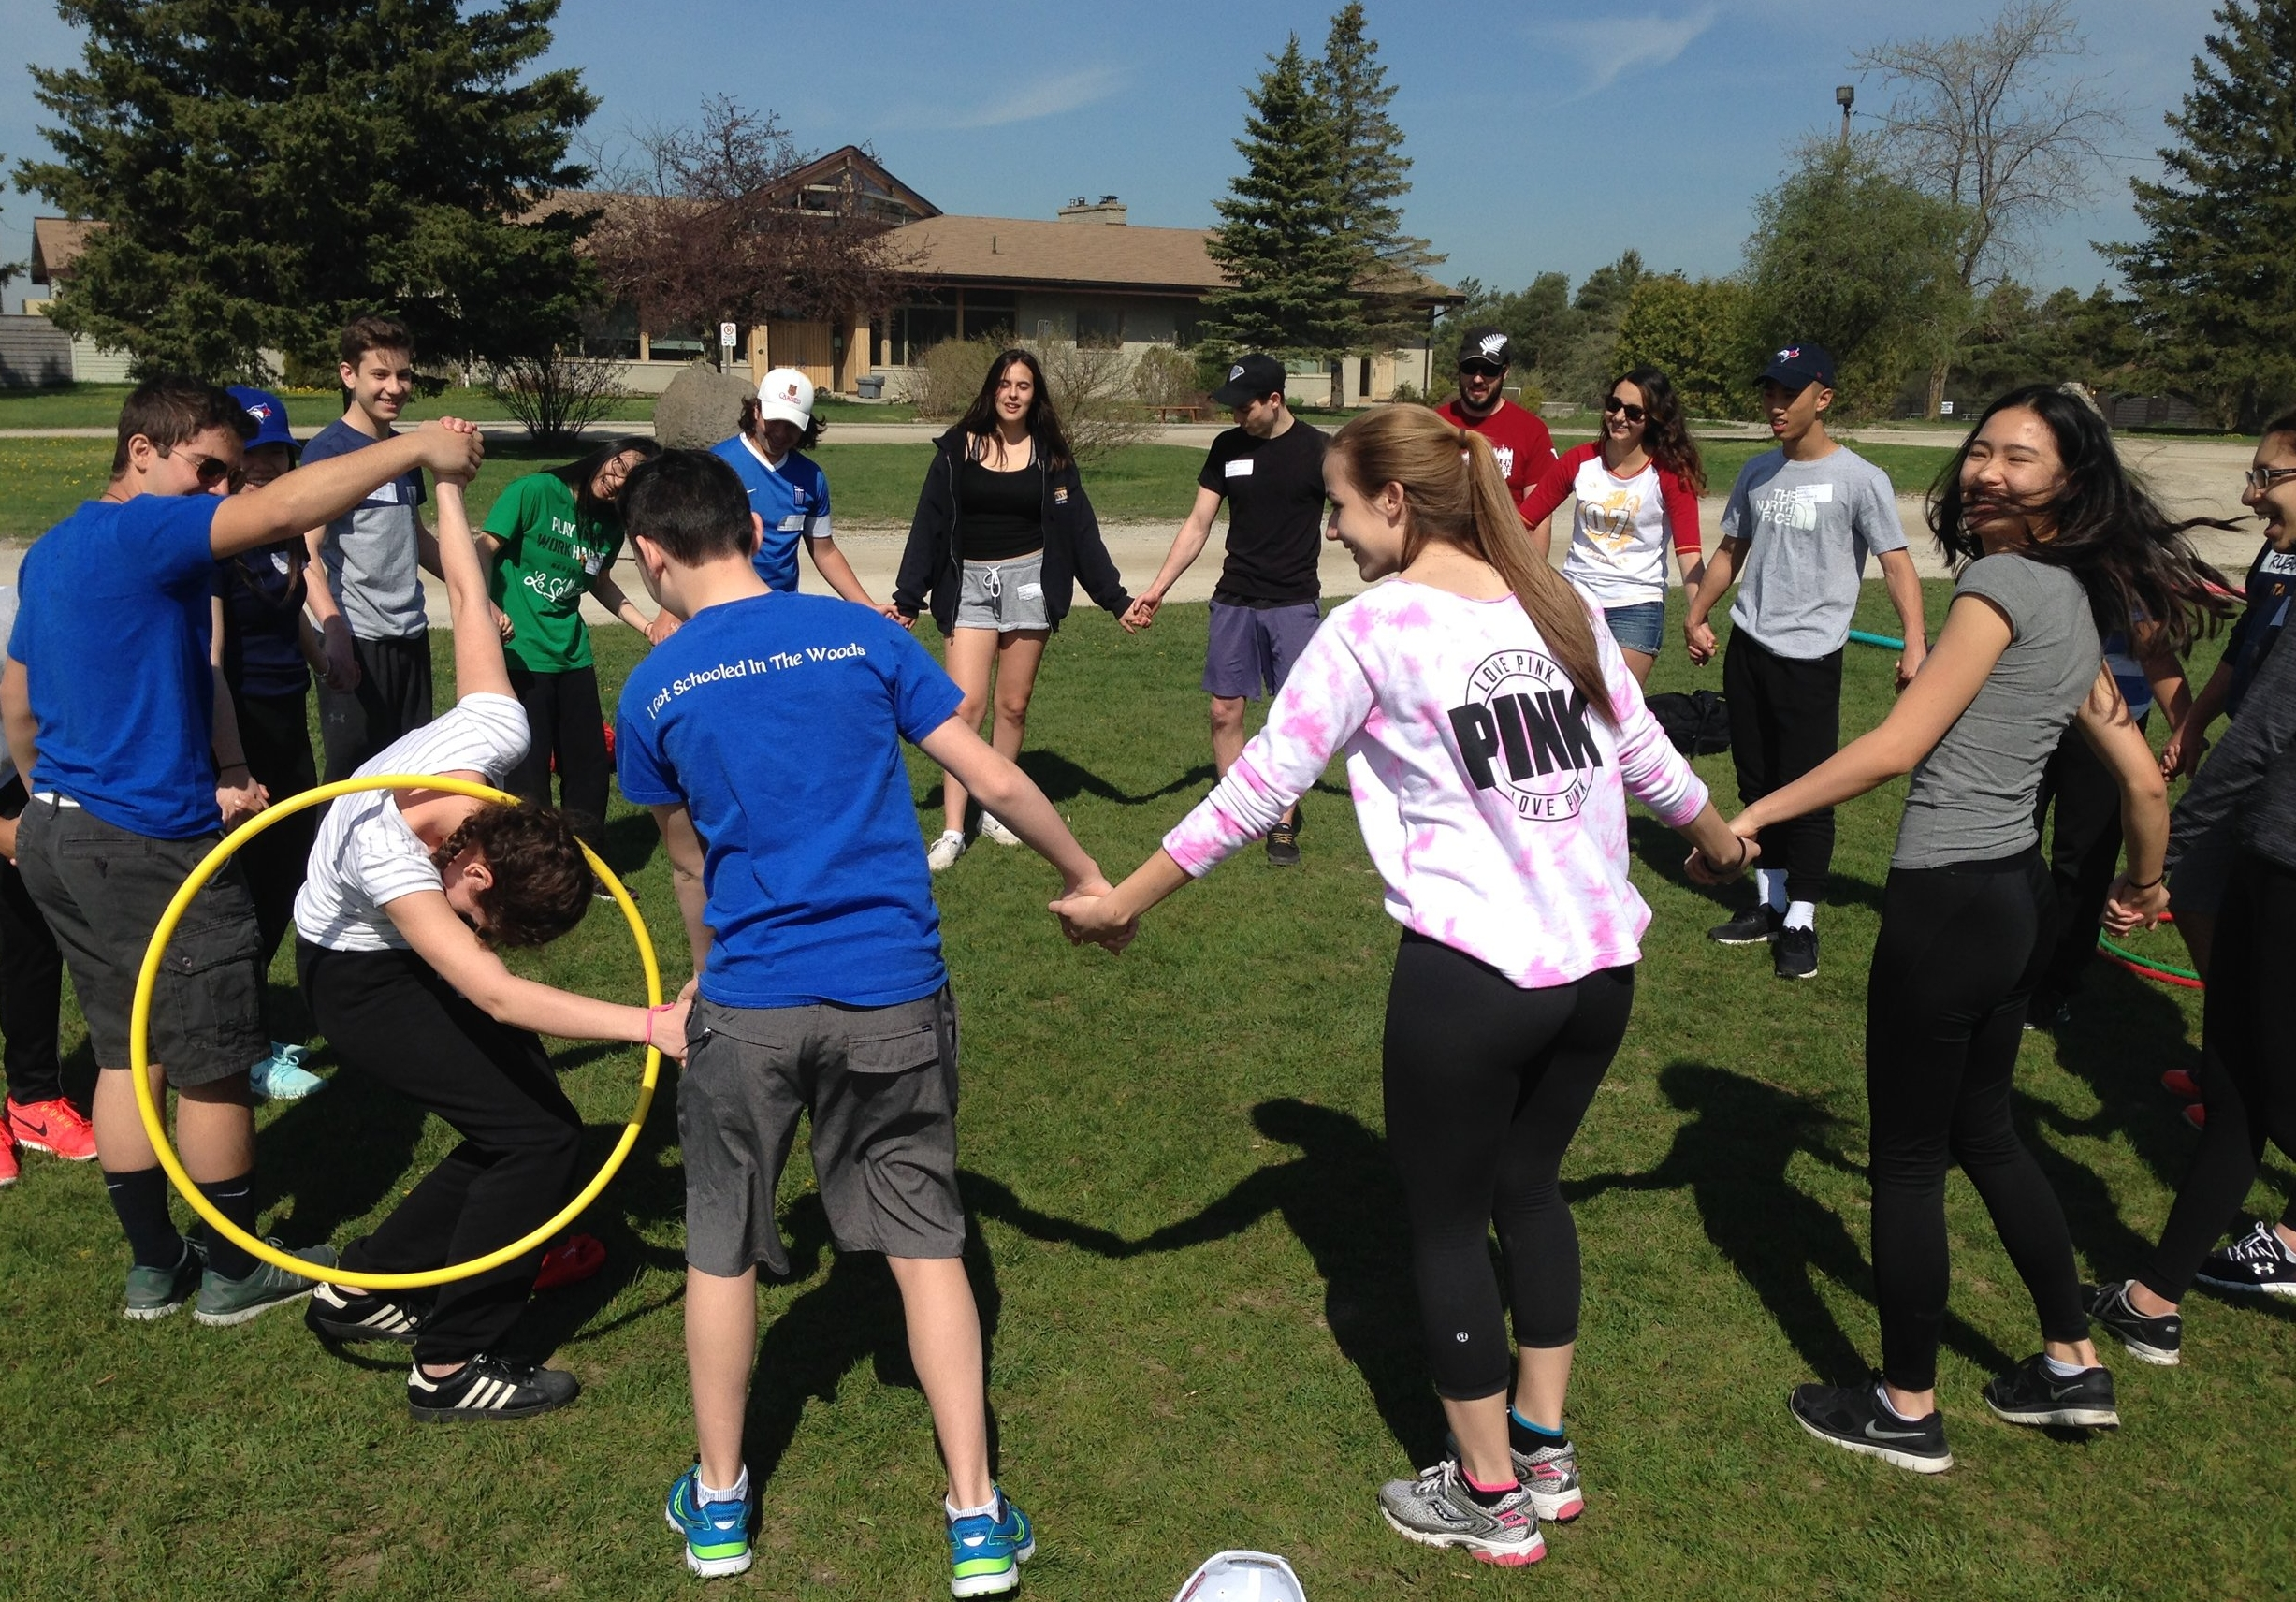 LEADERSHIP - All students have leadership abilities. To help develop their leadership abilities they must participate in opportunities to teach and support others and be a positive role model. Students need to ensure their words and actions are congruent at all times.Possible LEADERSHIP opportunities include:- Duke of Edinburgh - Gold Level Requirement- Muskoka Woods - Leader/Mentor Training at YMCA Cedar Glen- BOH4M - Business Leadership Course- PLF4M - Fitness Leadership Course- ADC4M - Drama in the Community Leadership Course- Executive of Councils & Clubs- Arts & Athletics Camp Counsellor